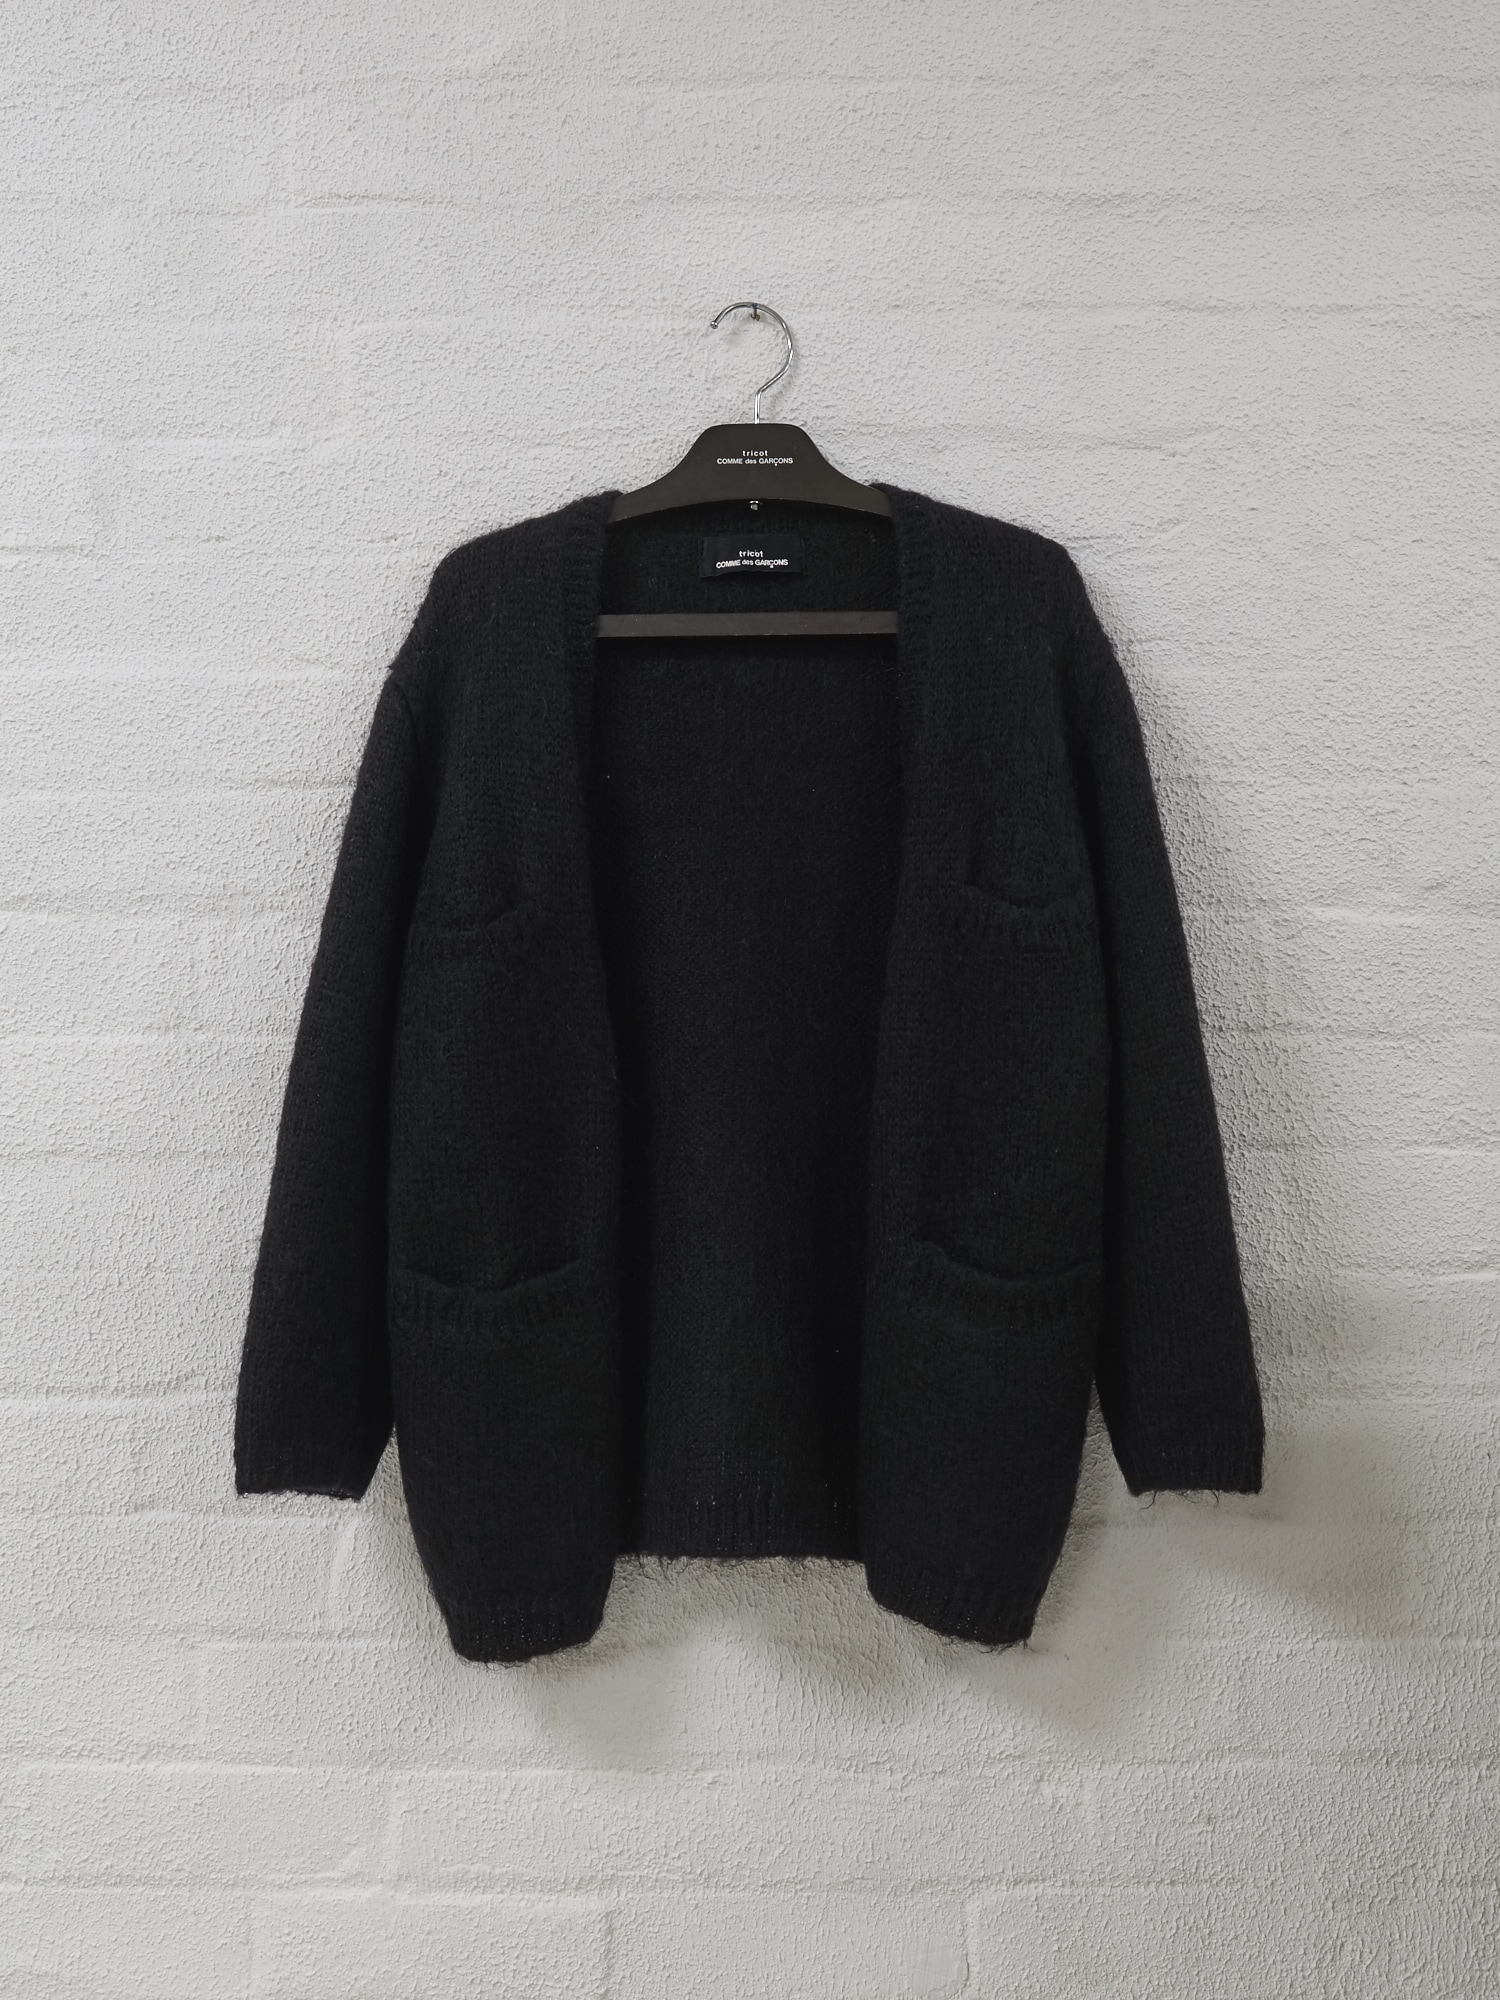 Filter Store,  Tricot Comme des Garcons brown wooden hanger,  c.1980s with a Comme wool cardigan. This hanger was nestled on the racks for 'hangers', here its hanging on the wall.